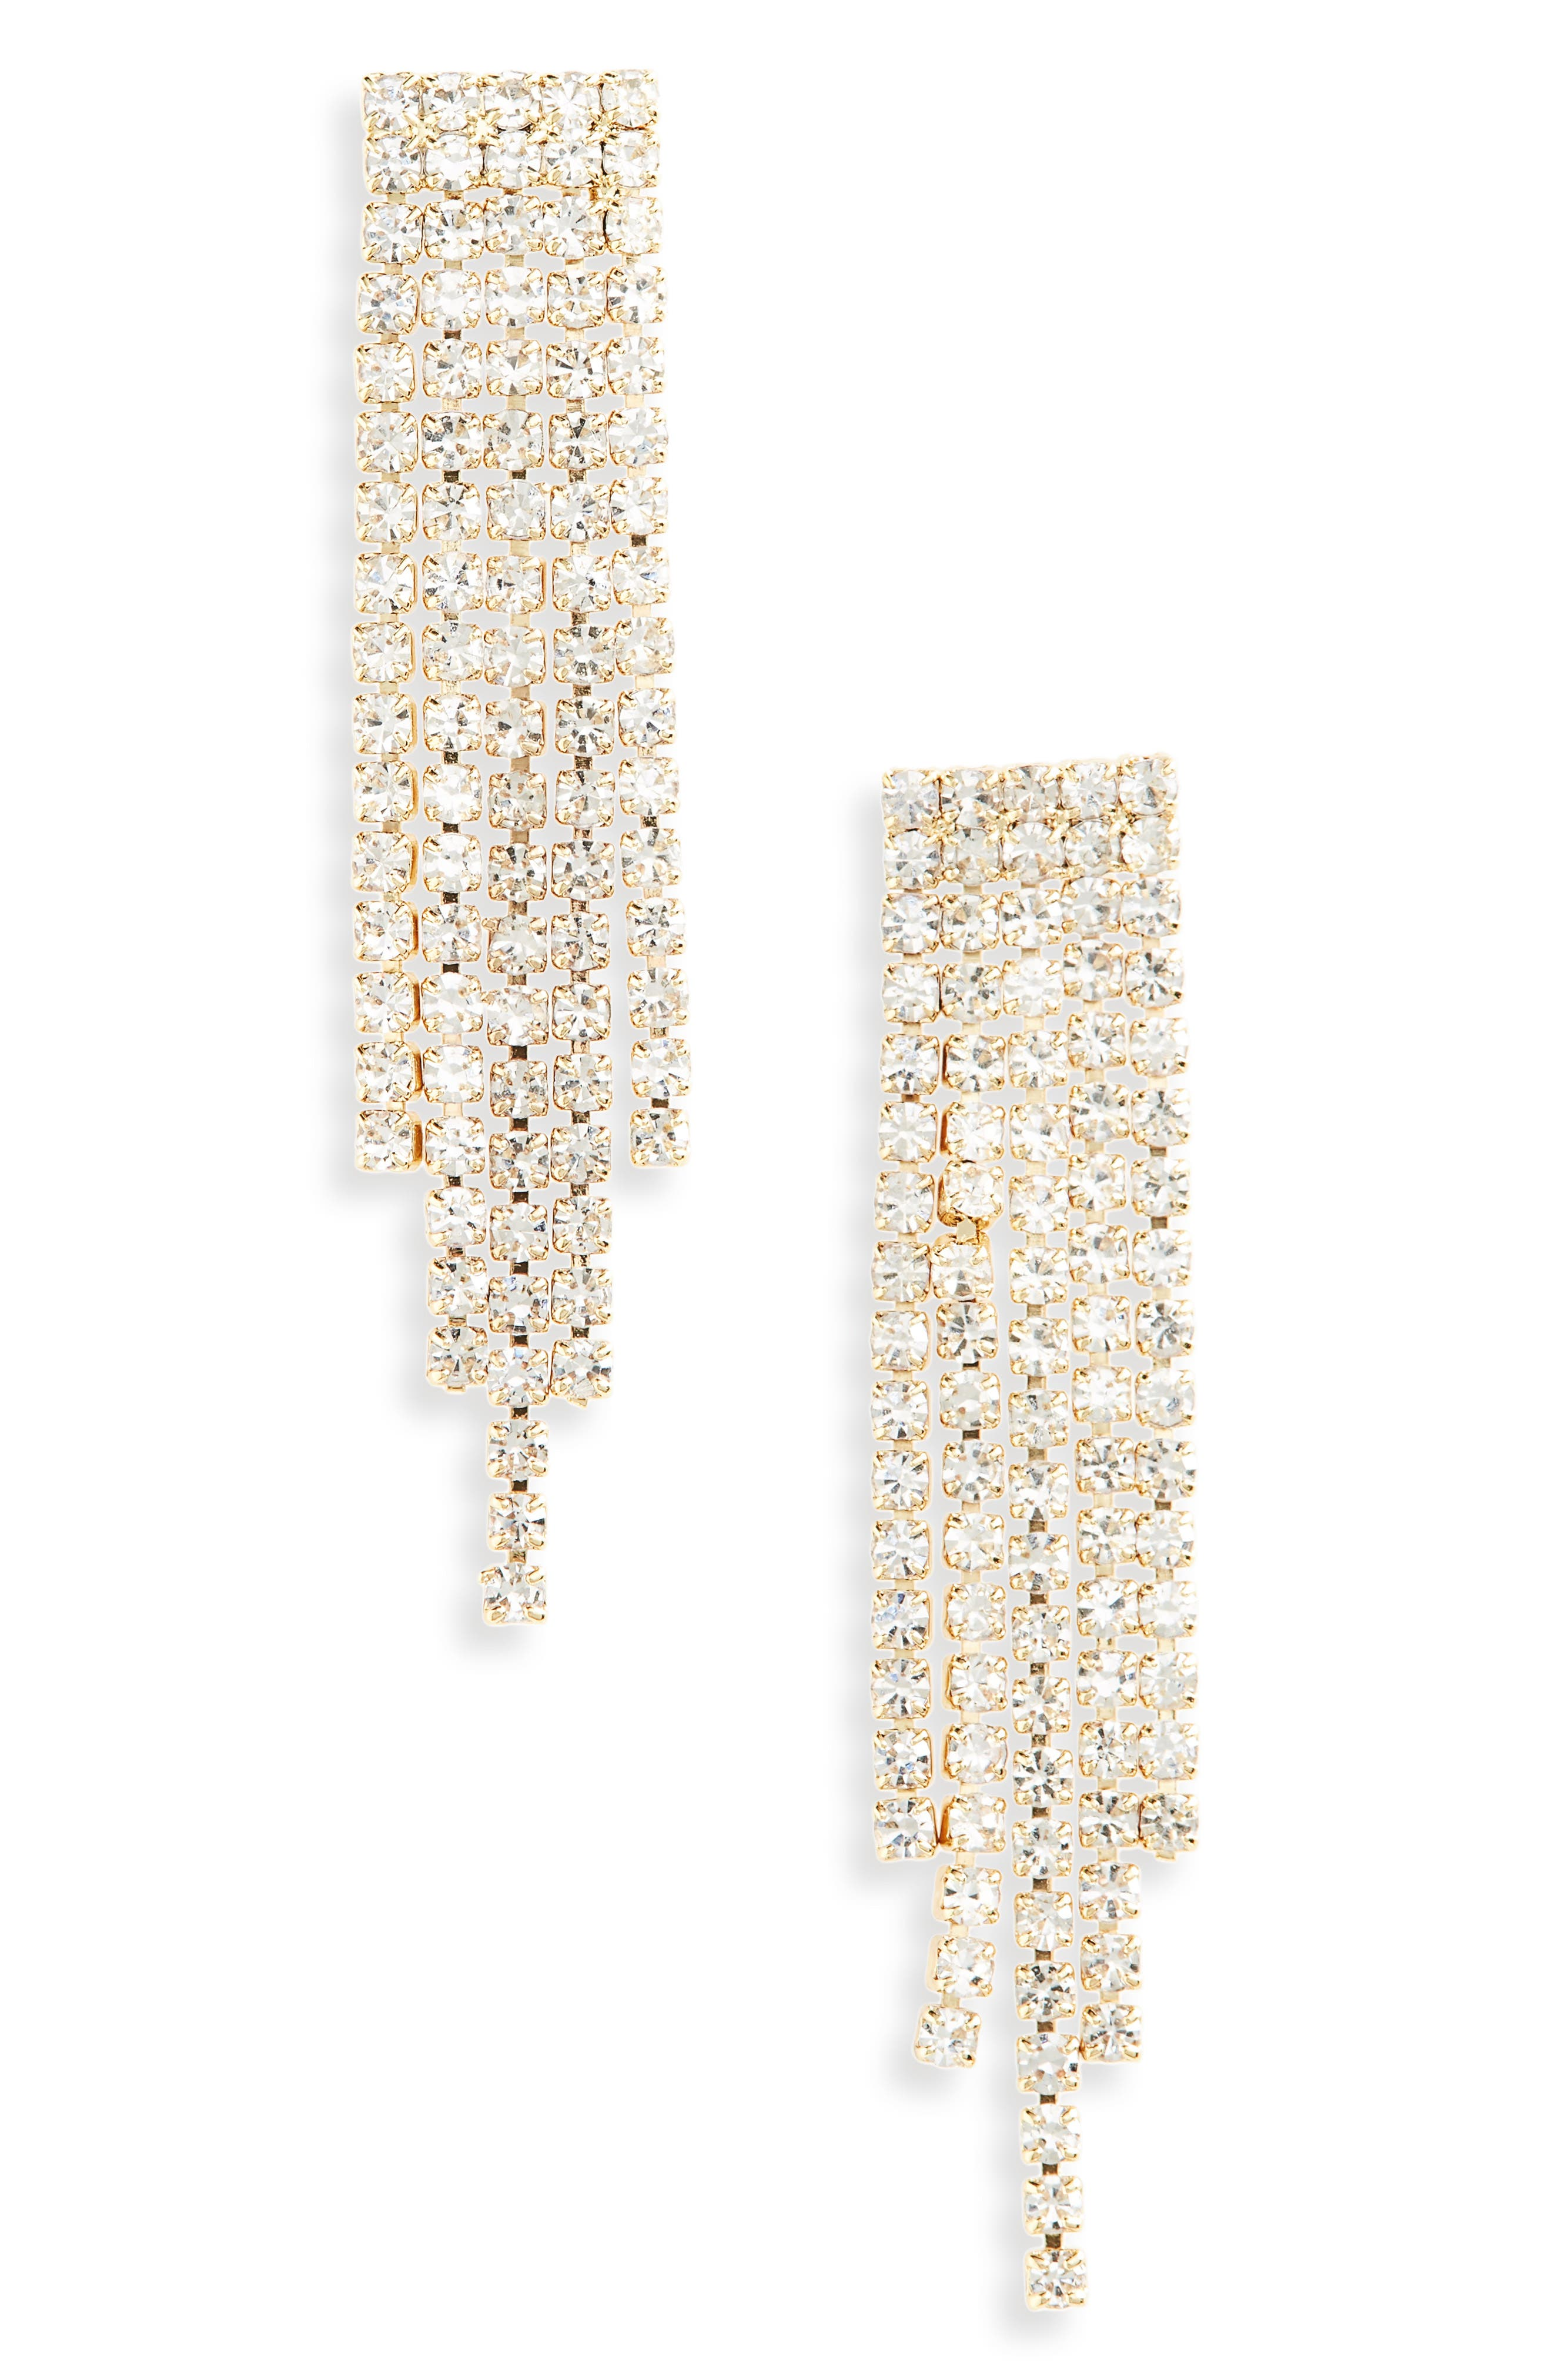 Harlow Crystal Earrings,                             Main thumbnail 1, color,                             GOLD/ CLEAR